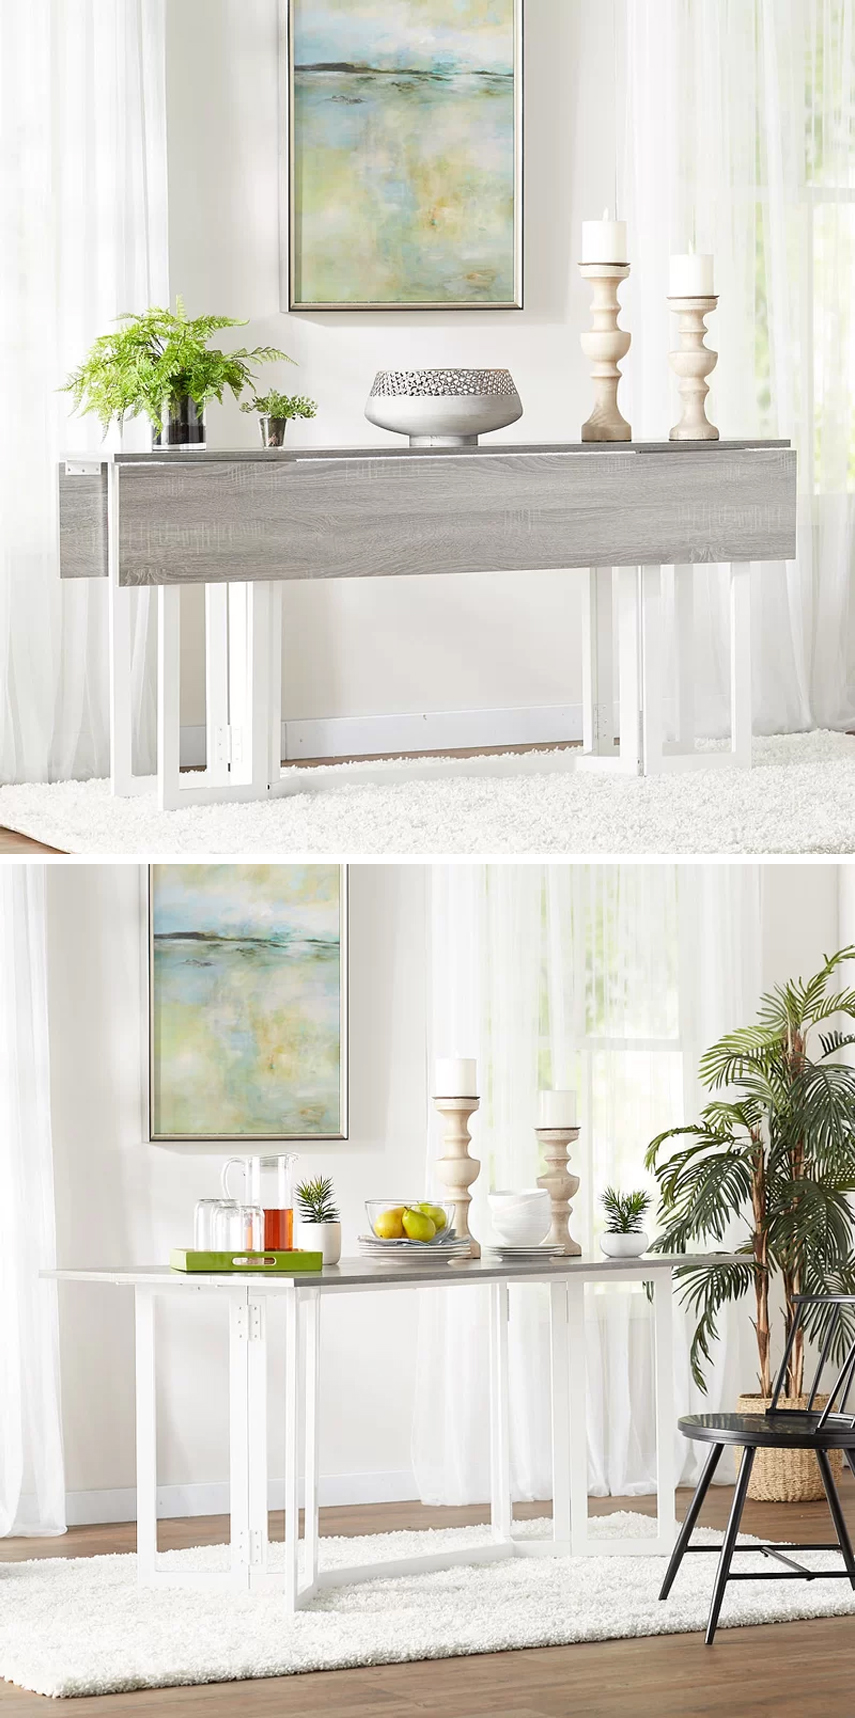 Gate leg dining tables are perfect small space solutions! See more ways to create a dining room in a small home's living space on the blog.